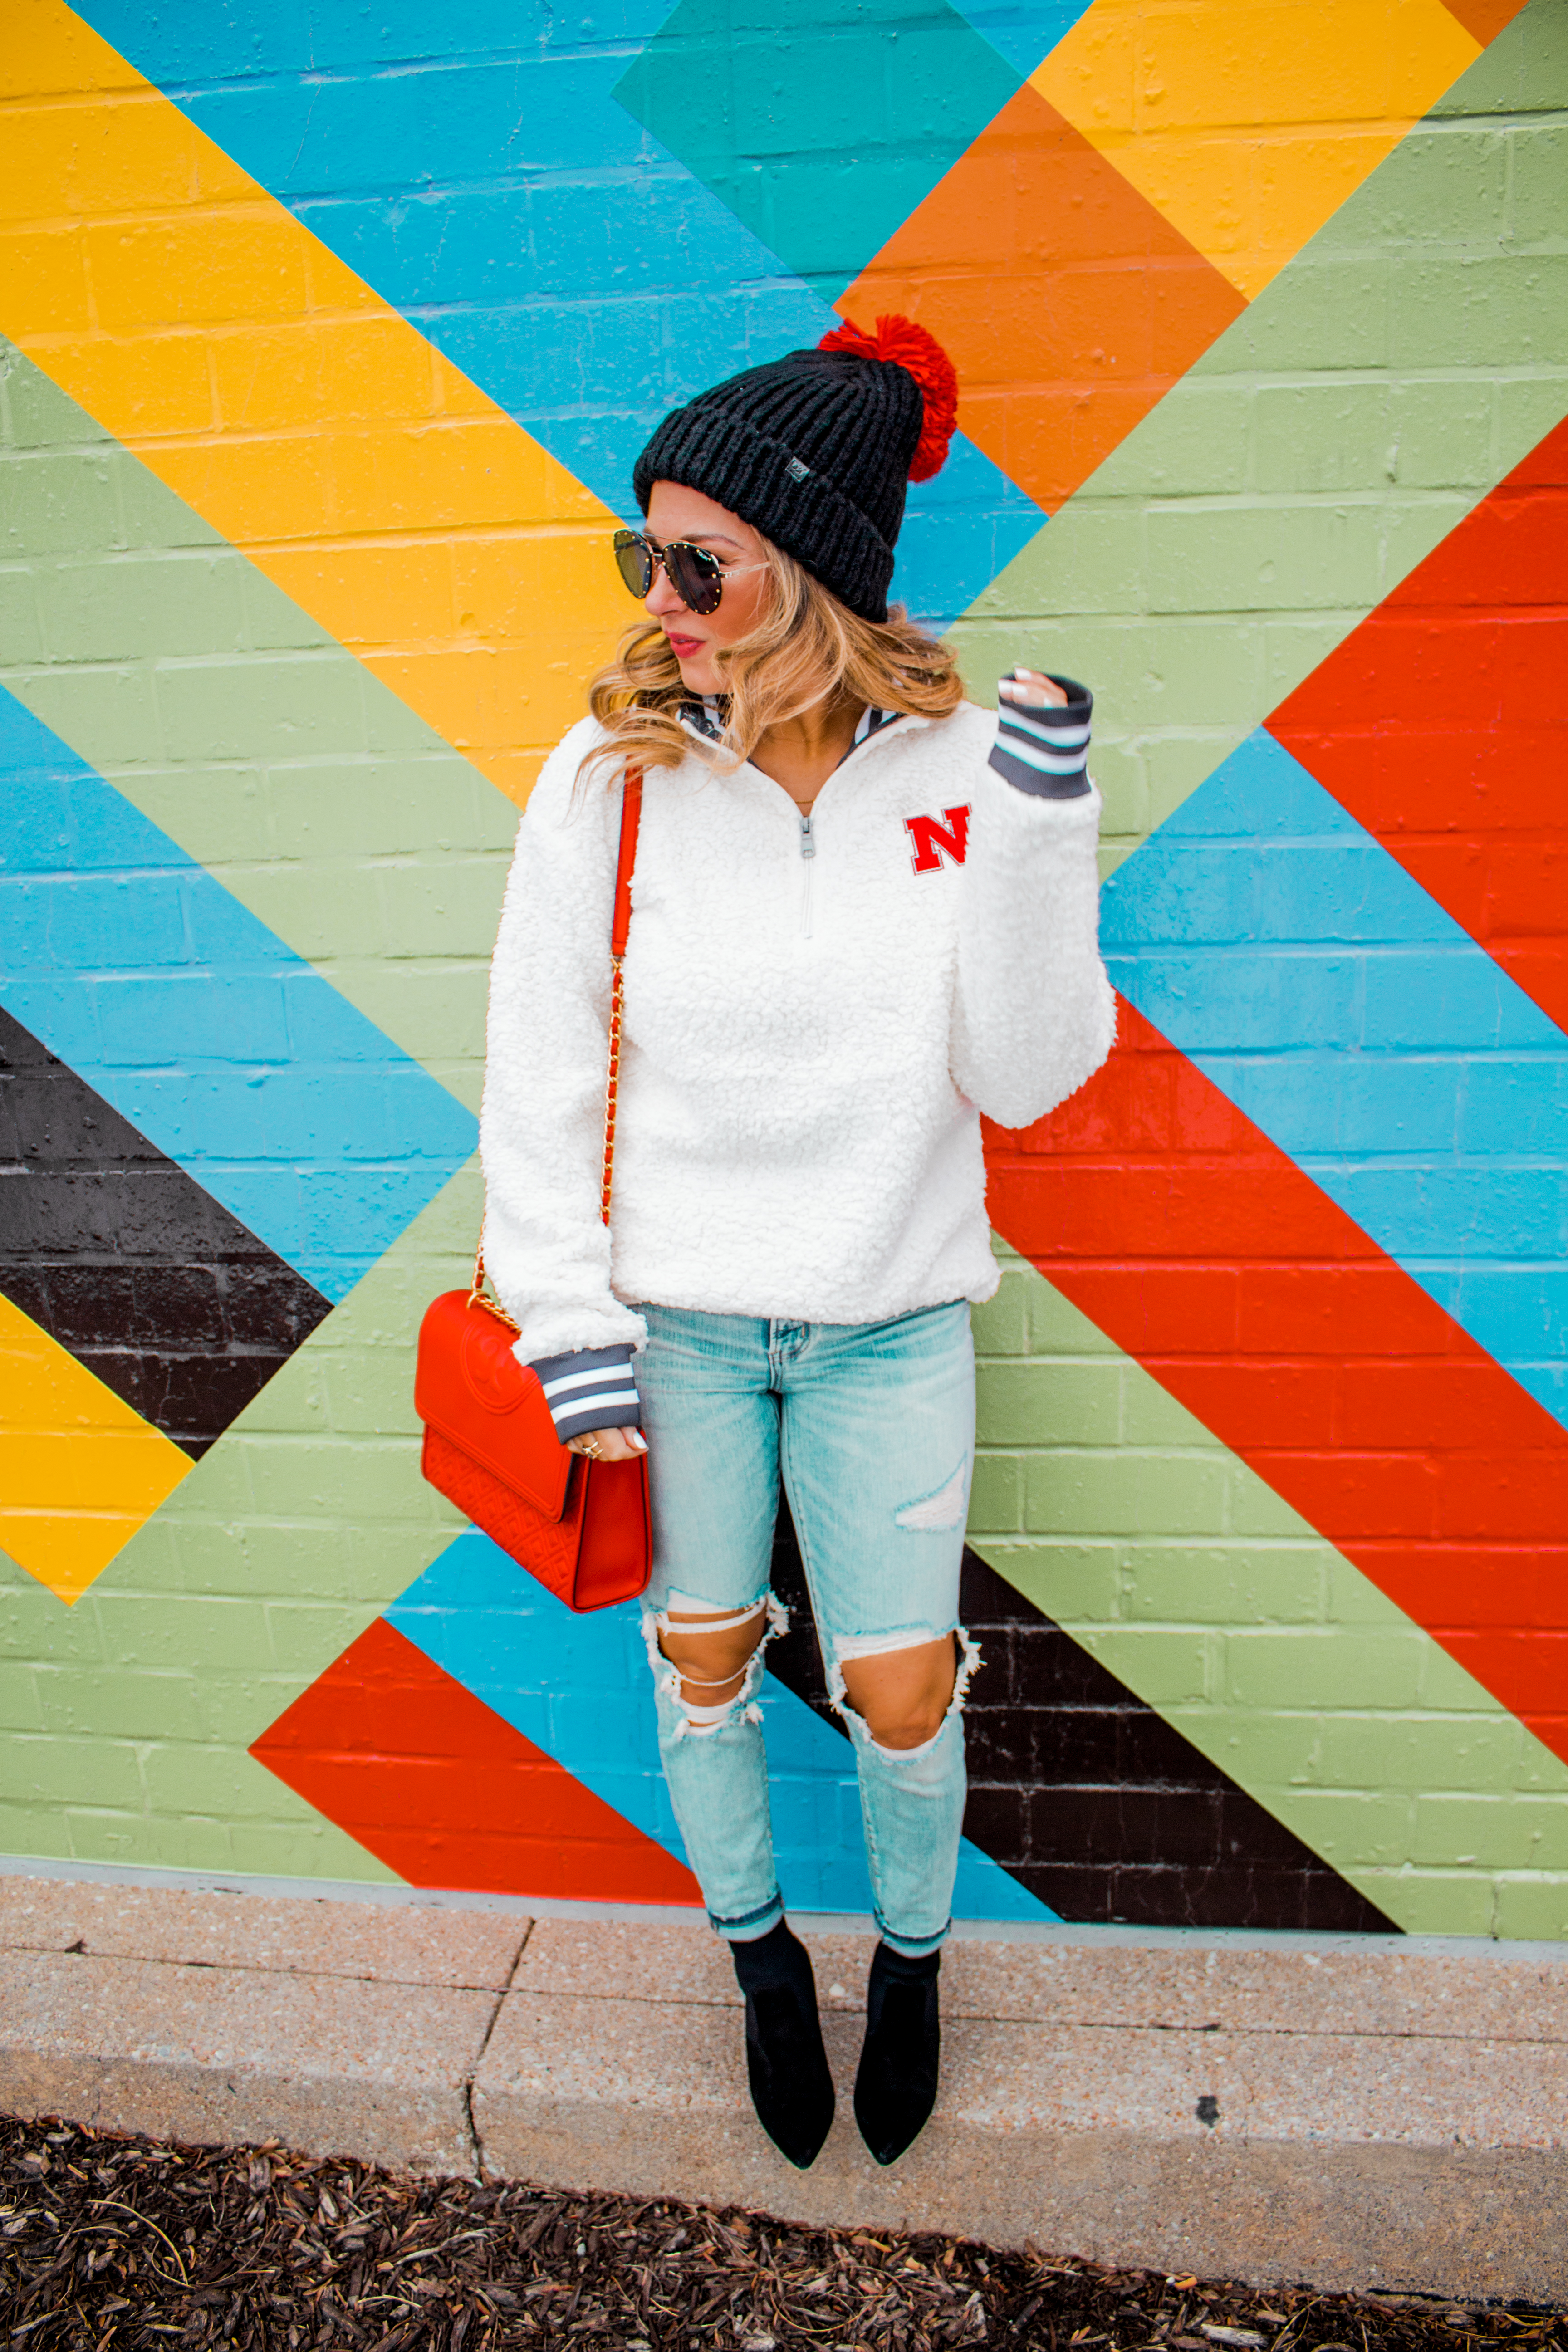 Nebraska - Women's Fashion - Sherpa - Husker - Pullover - Husker Gear - Omaha Blogger - Sabby Style - Casual Outfit - 1